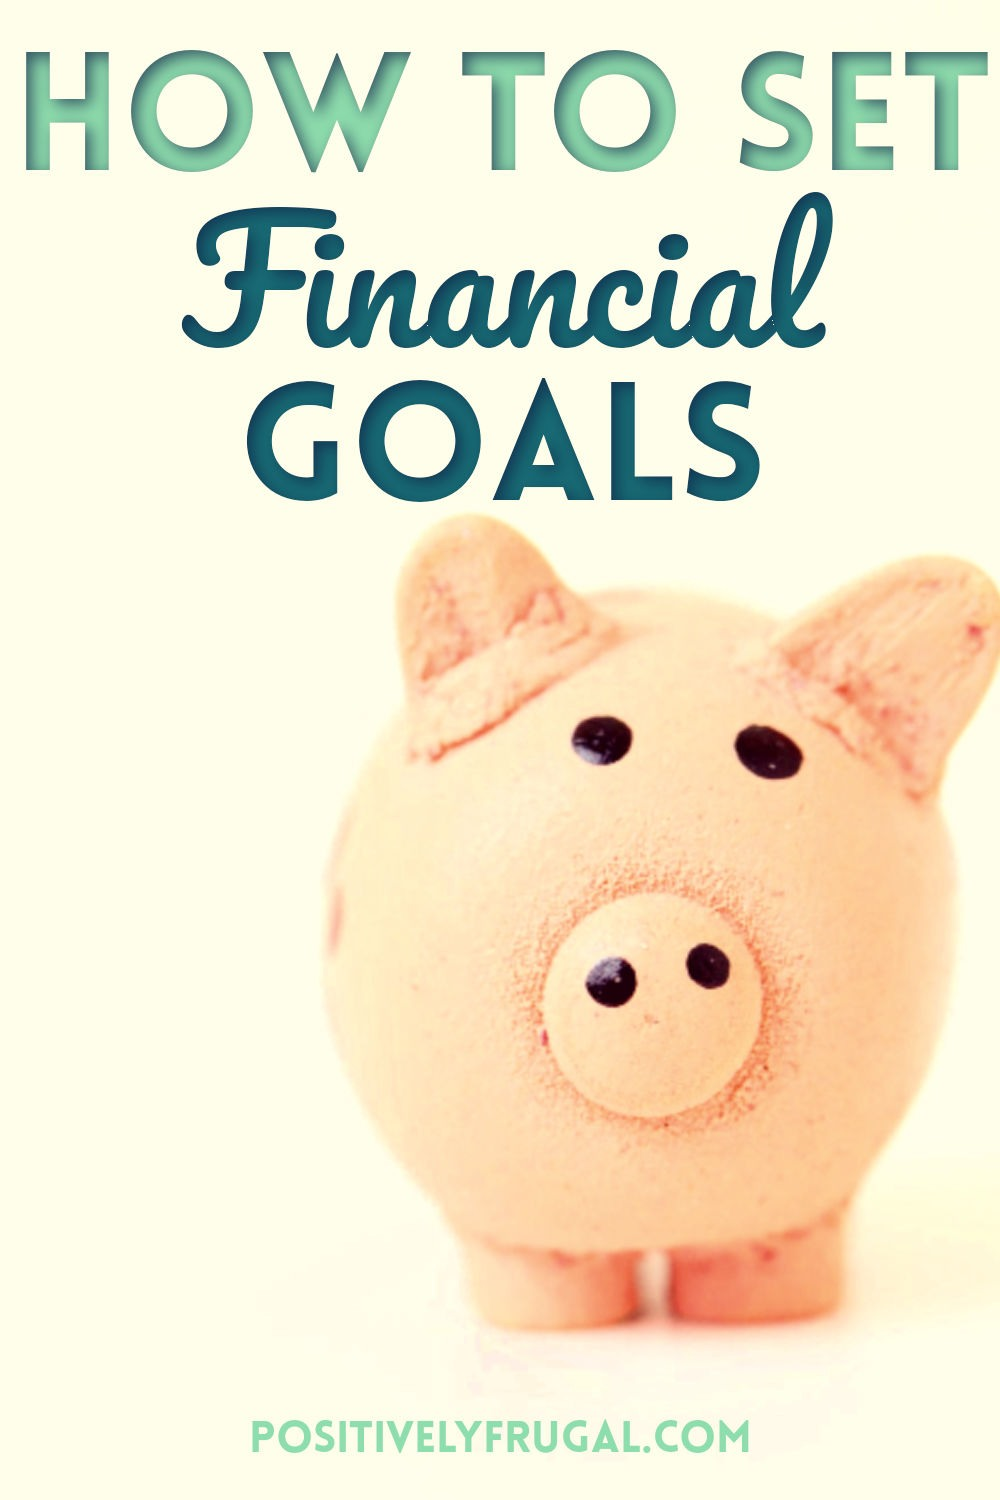 Financial Goals by PositivelyFrugal.com